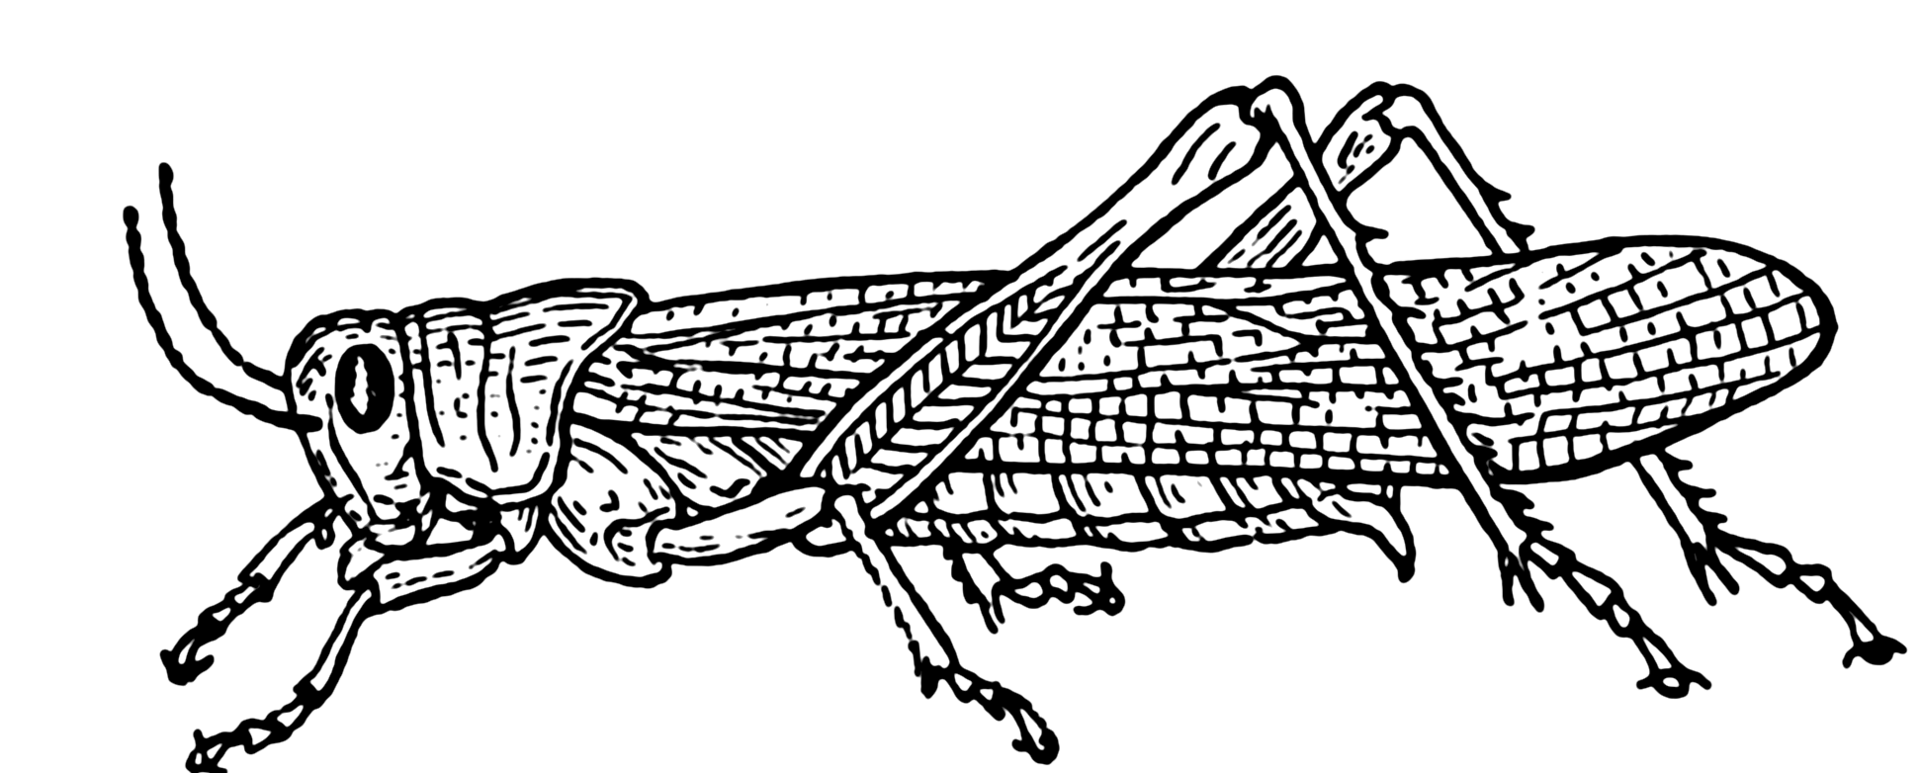 Line Drawing Insects : Insect science investigations for kids grasshoppers and